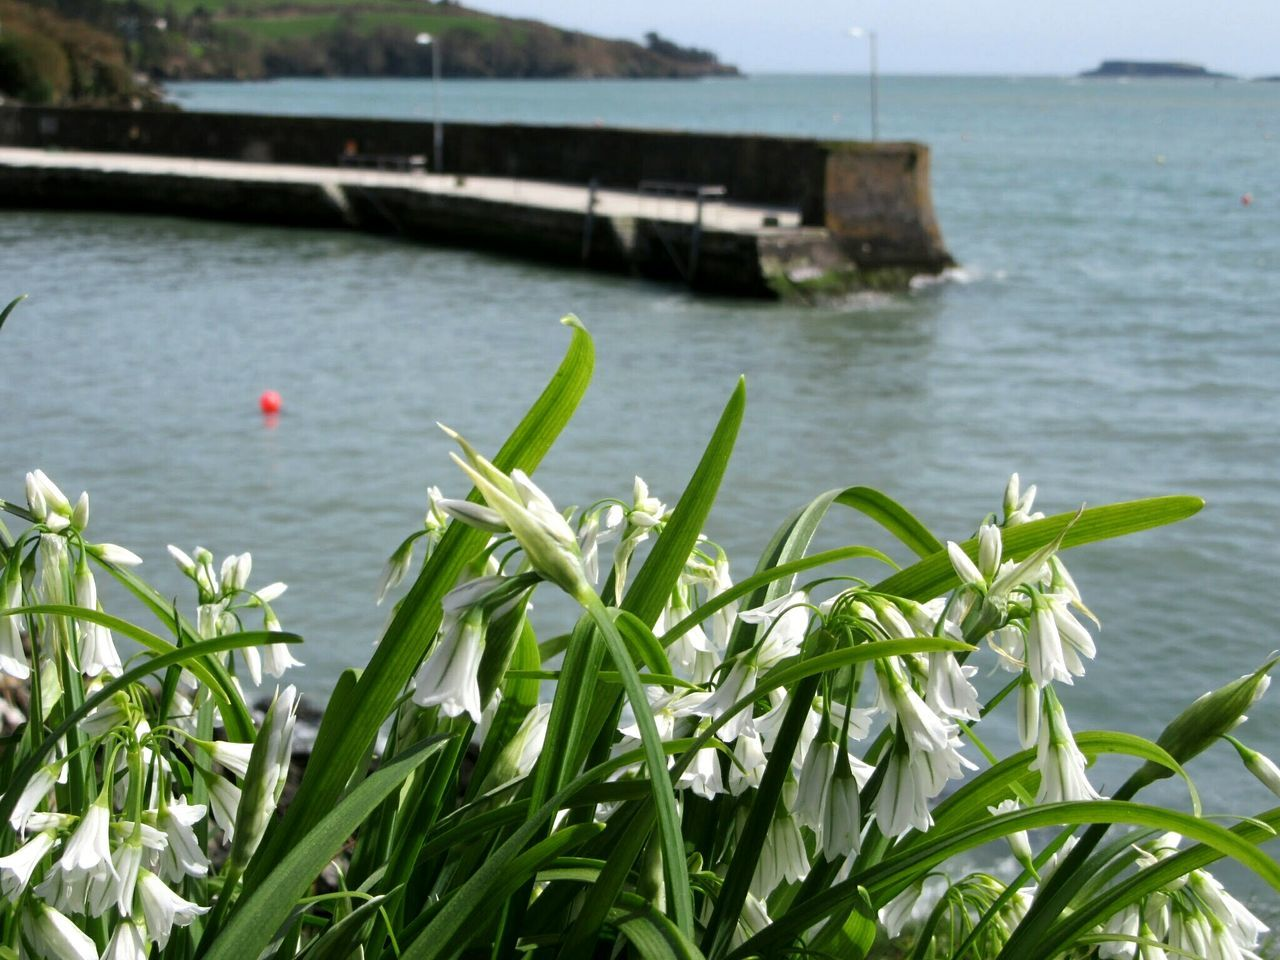 Albino bluebells Albino Bluebells Native Plants Shoreline Pier Glandore, Ireland West Cork Wildatlanticway Ireland